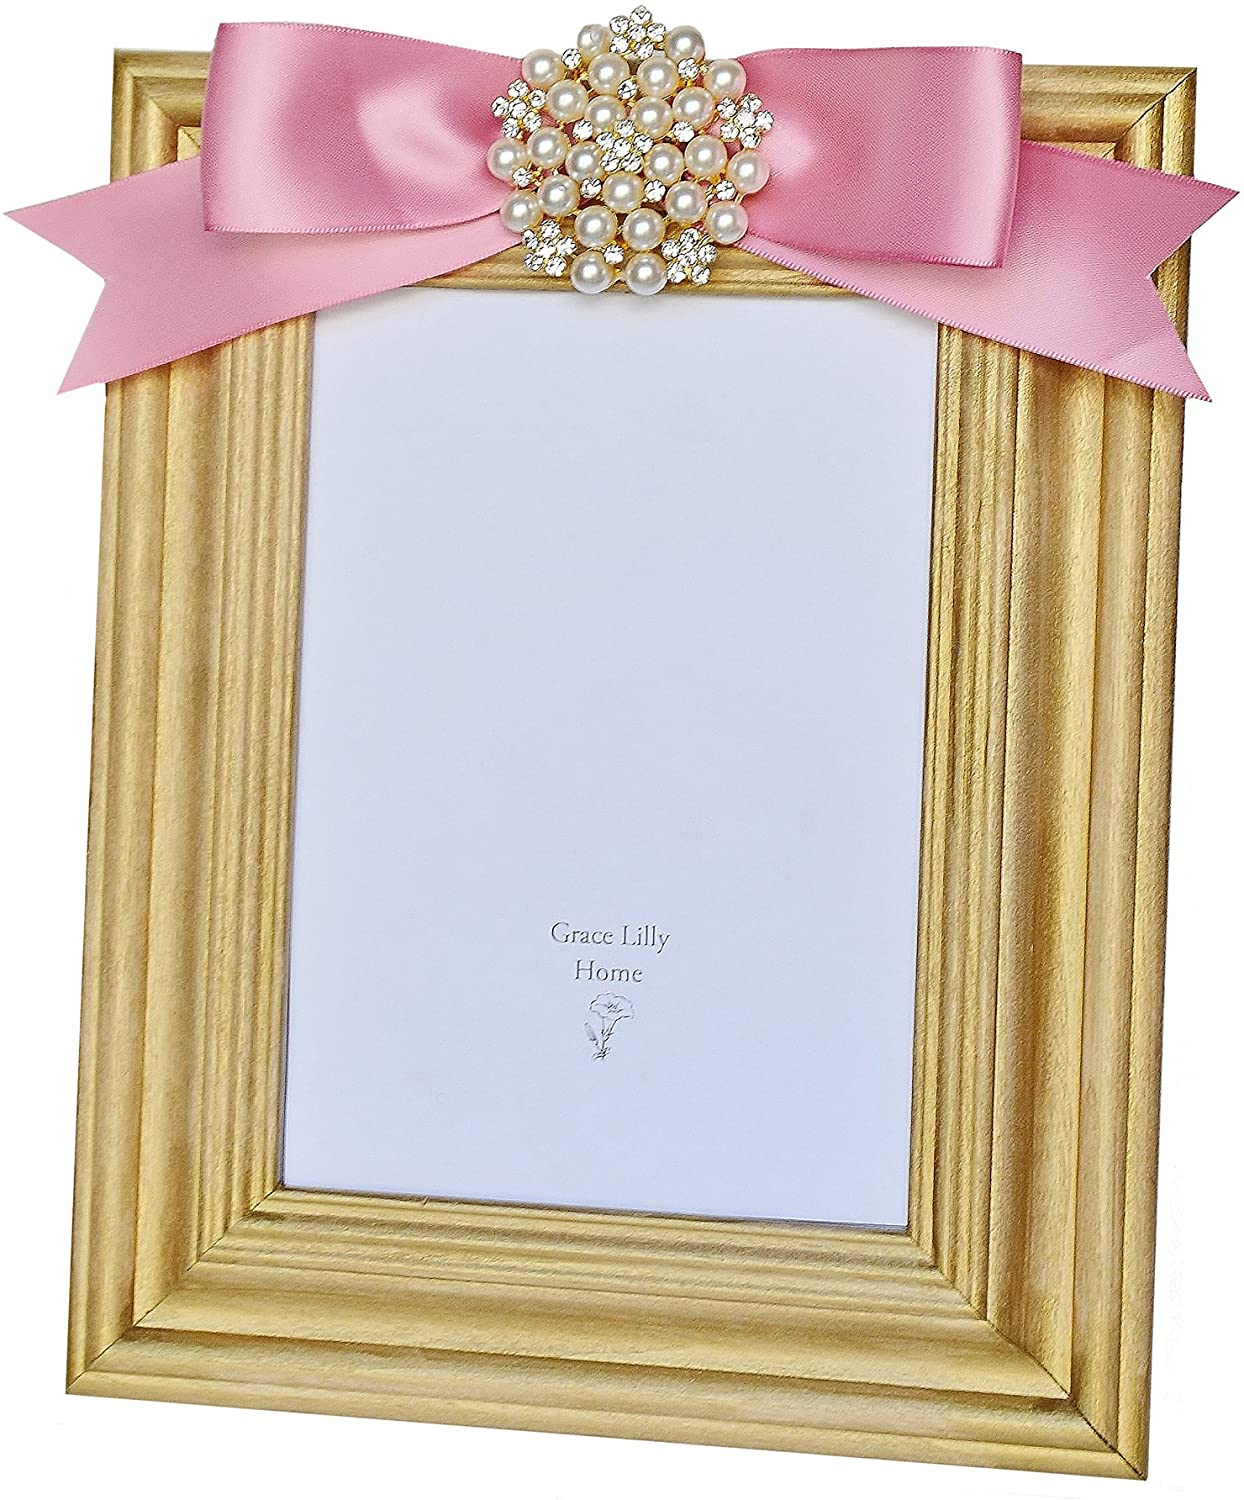 Grace Lilly Home Pink Picture Frame 5 x 7